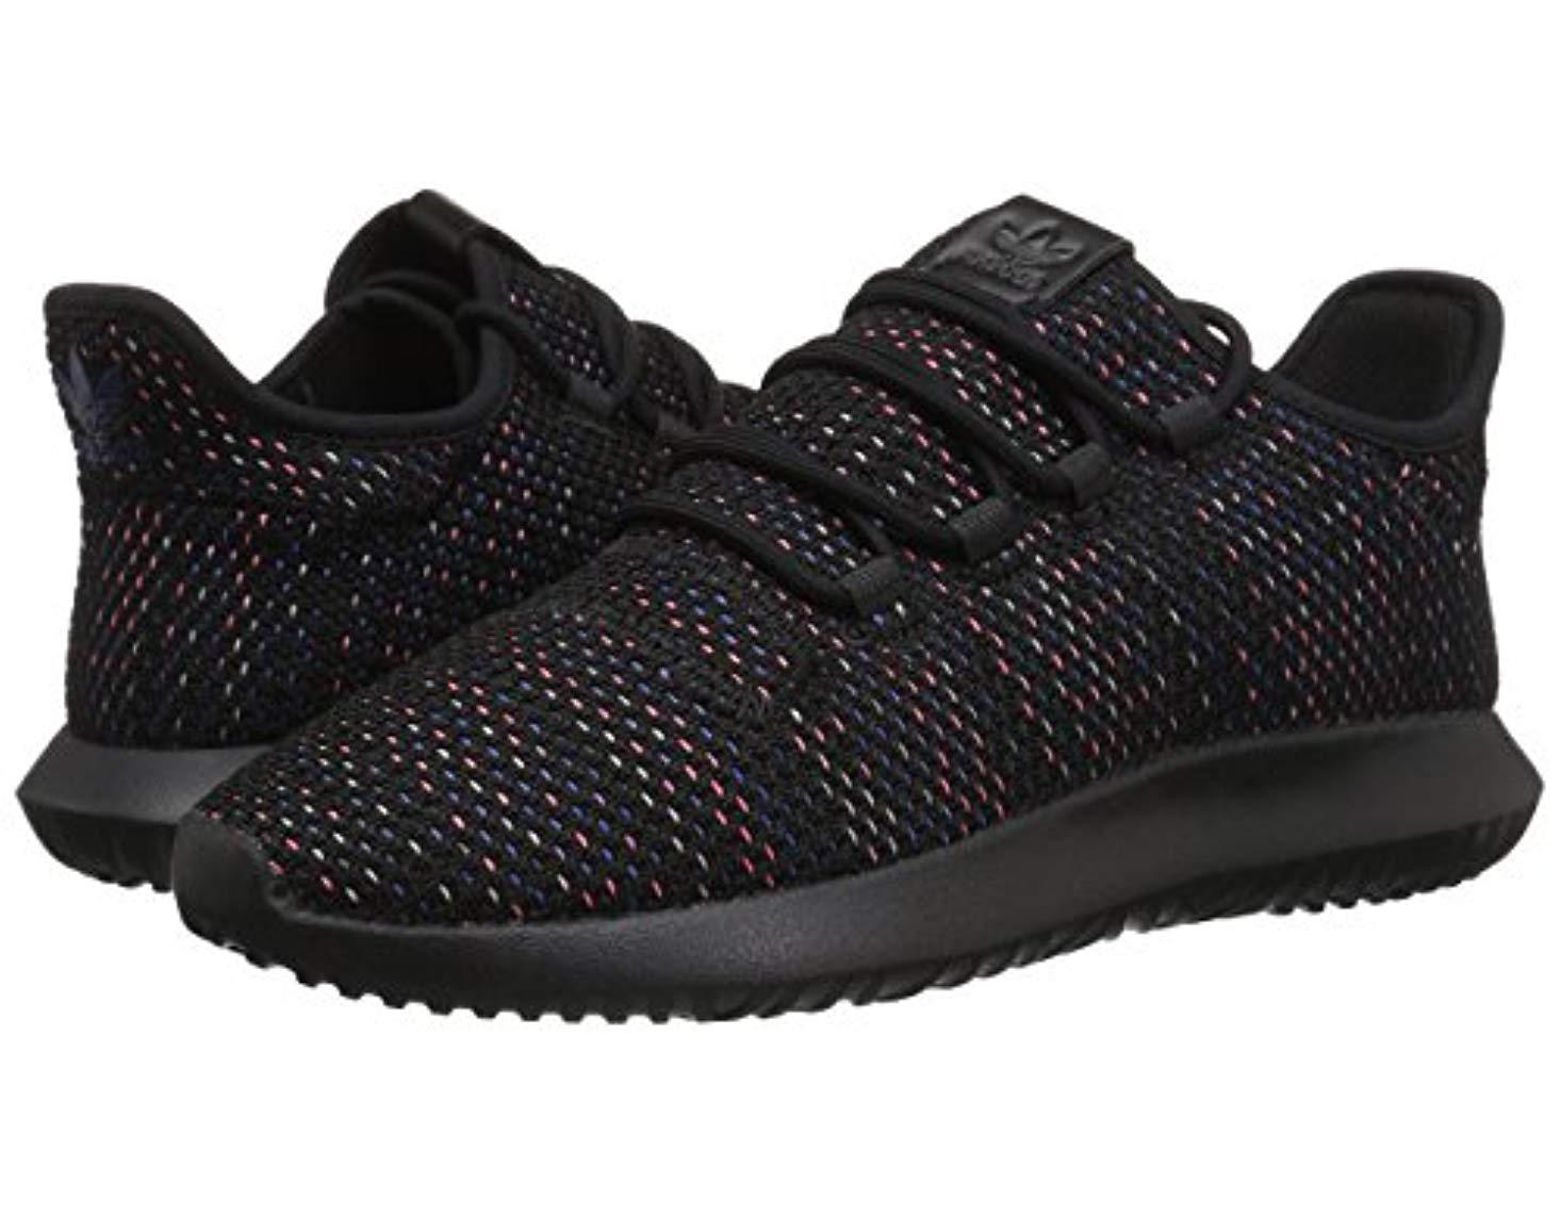 new style 9044b 60af0 adidas Originals. Men s Tubular Shadow Ck Fashion Sneakers Running Shoe,  Black solar Red mystery ...